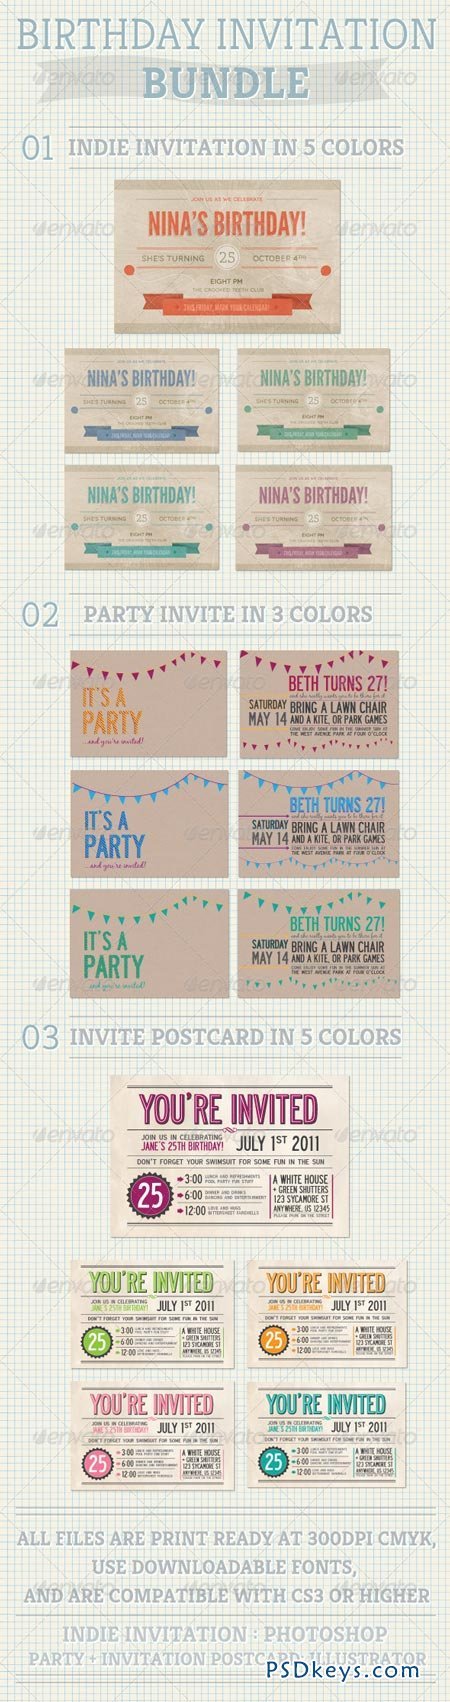 Birthday Invitation Bundle 654460